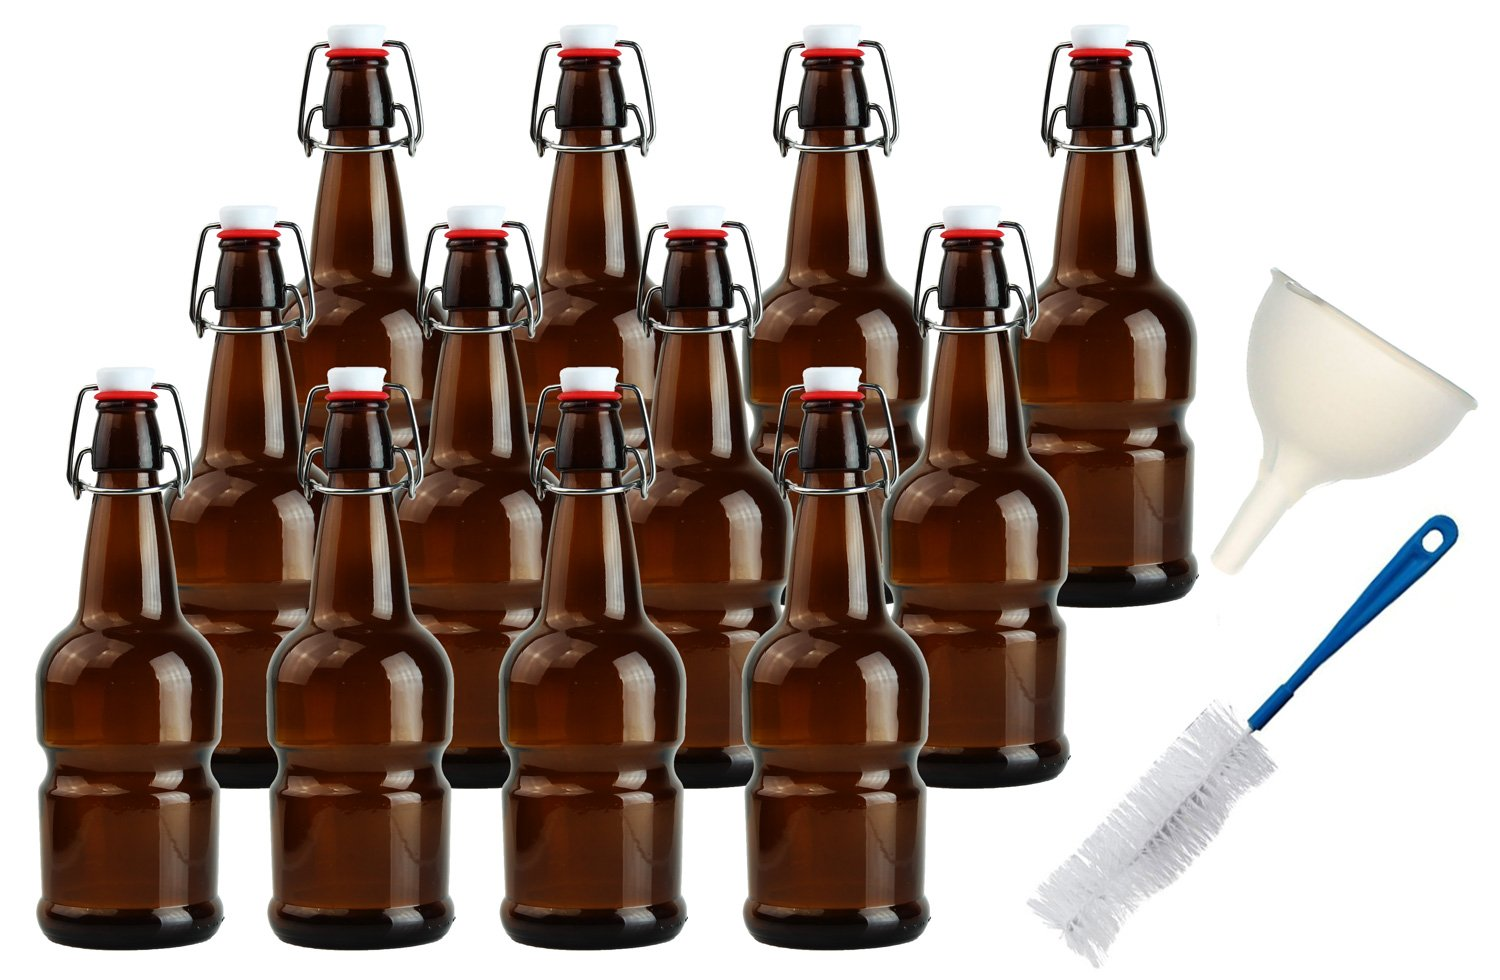 TeiKis 16oz Kombucha/Beer Bottles (6 Pack|Amber) with Funnel + Brush + Pen